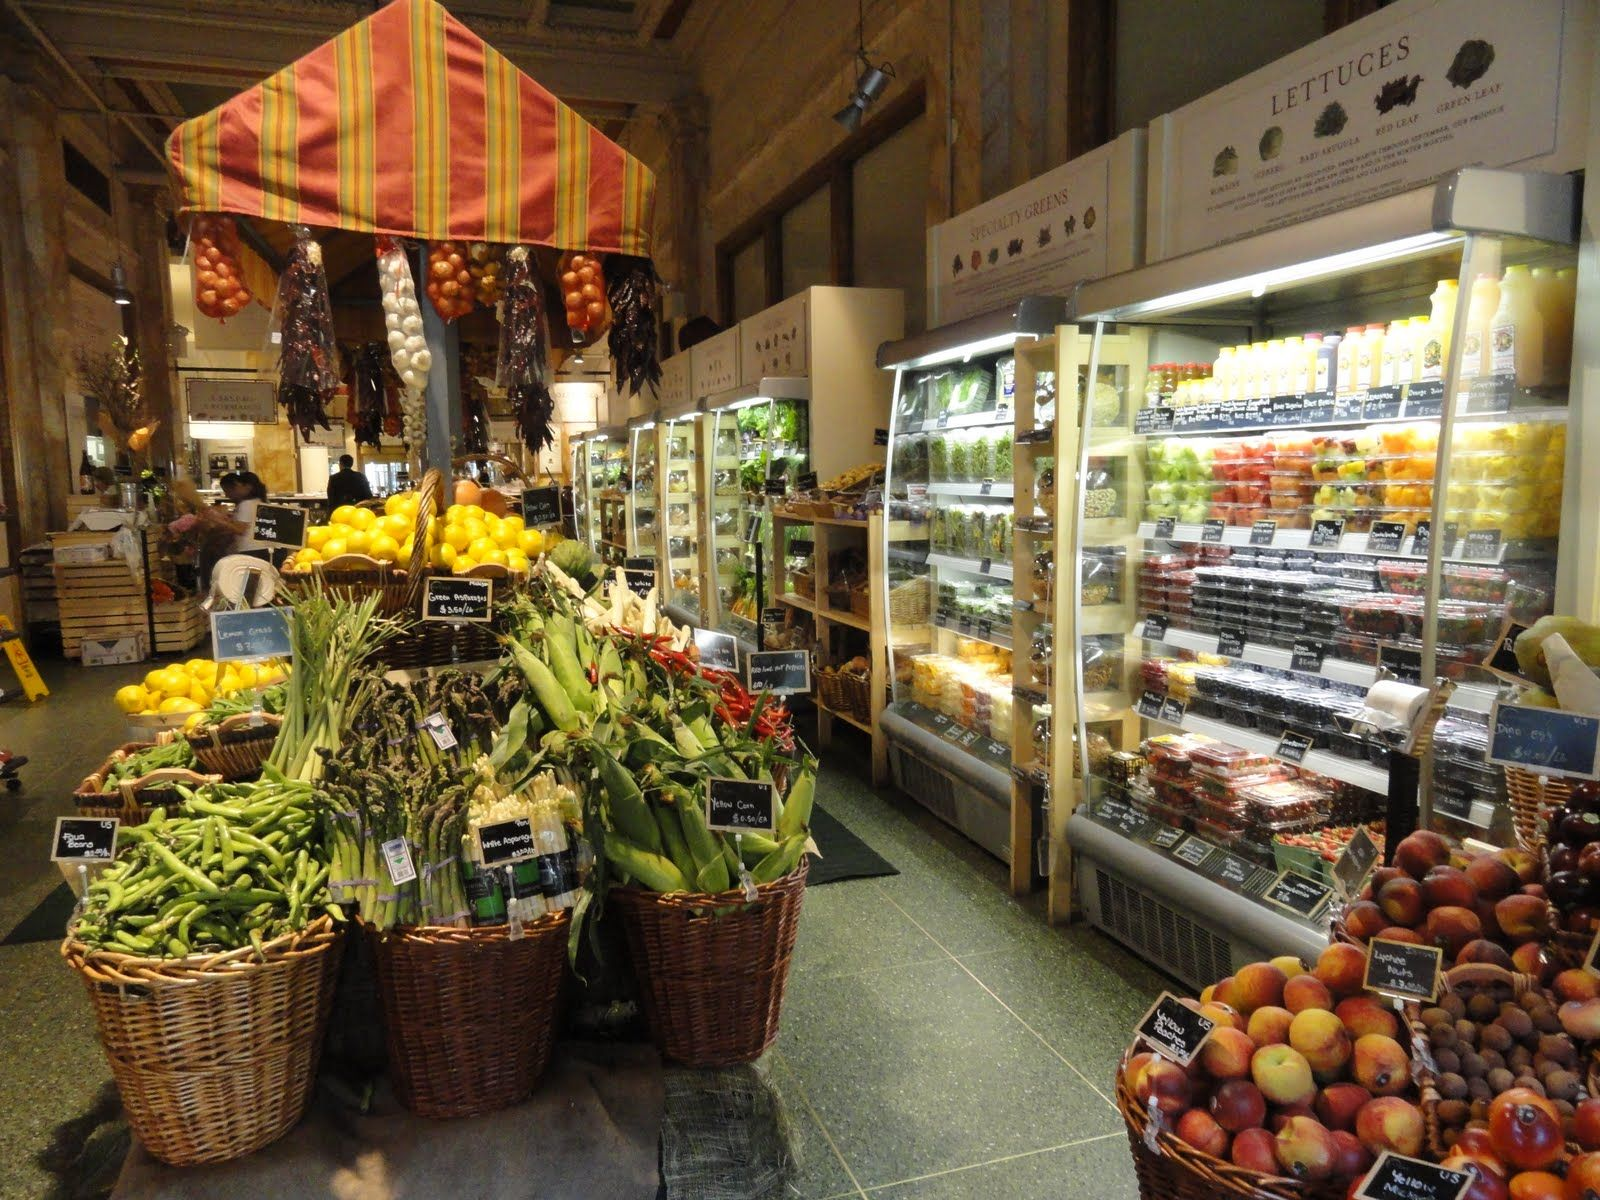 Mario Batali\u0027s New Market, Eataly - Google Search | Market | Pinterest